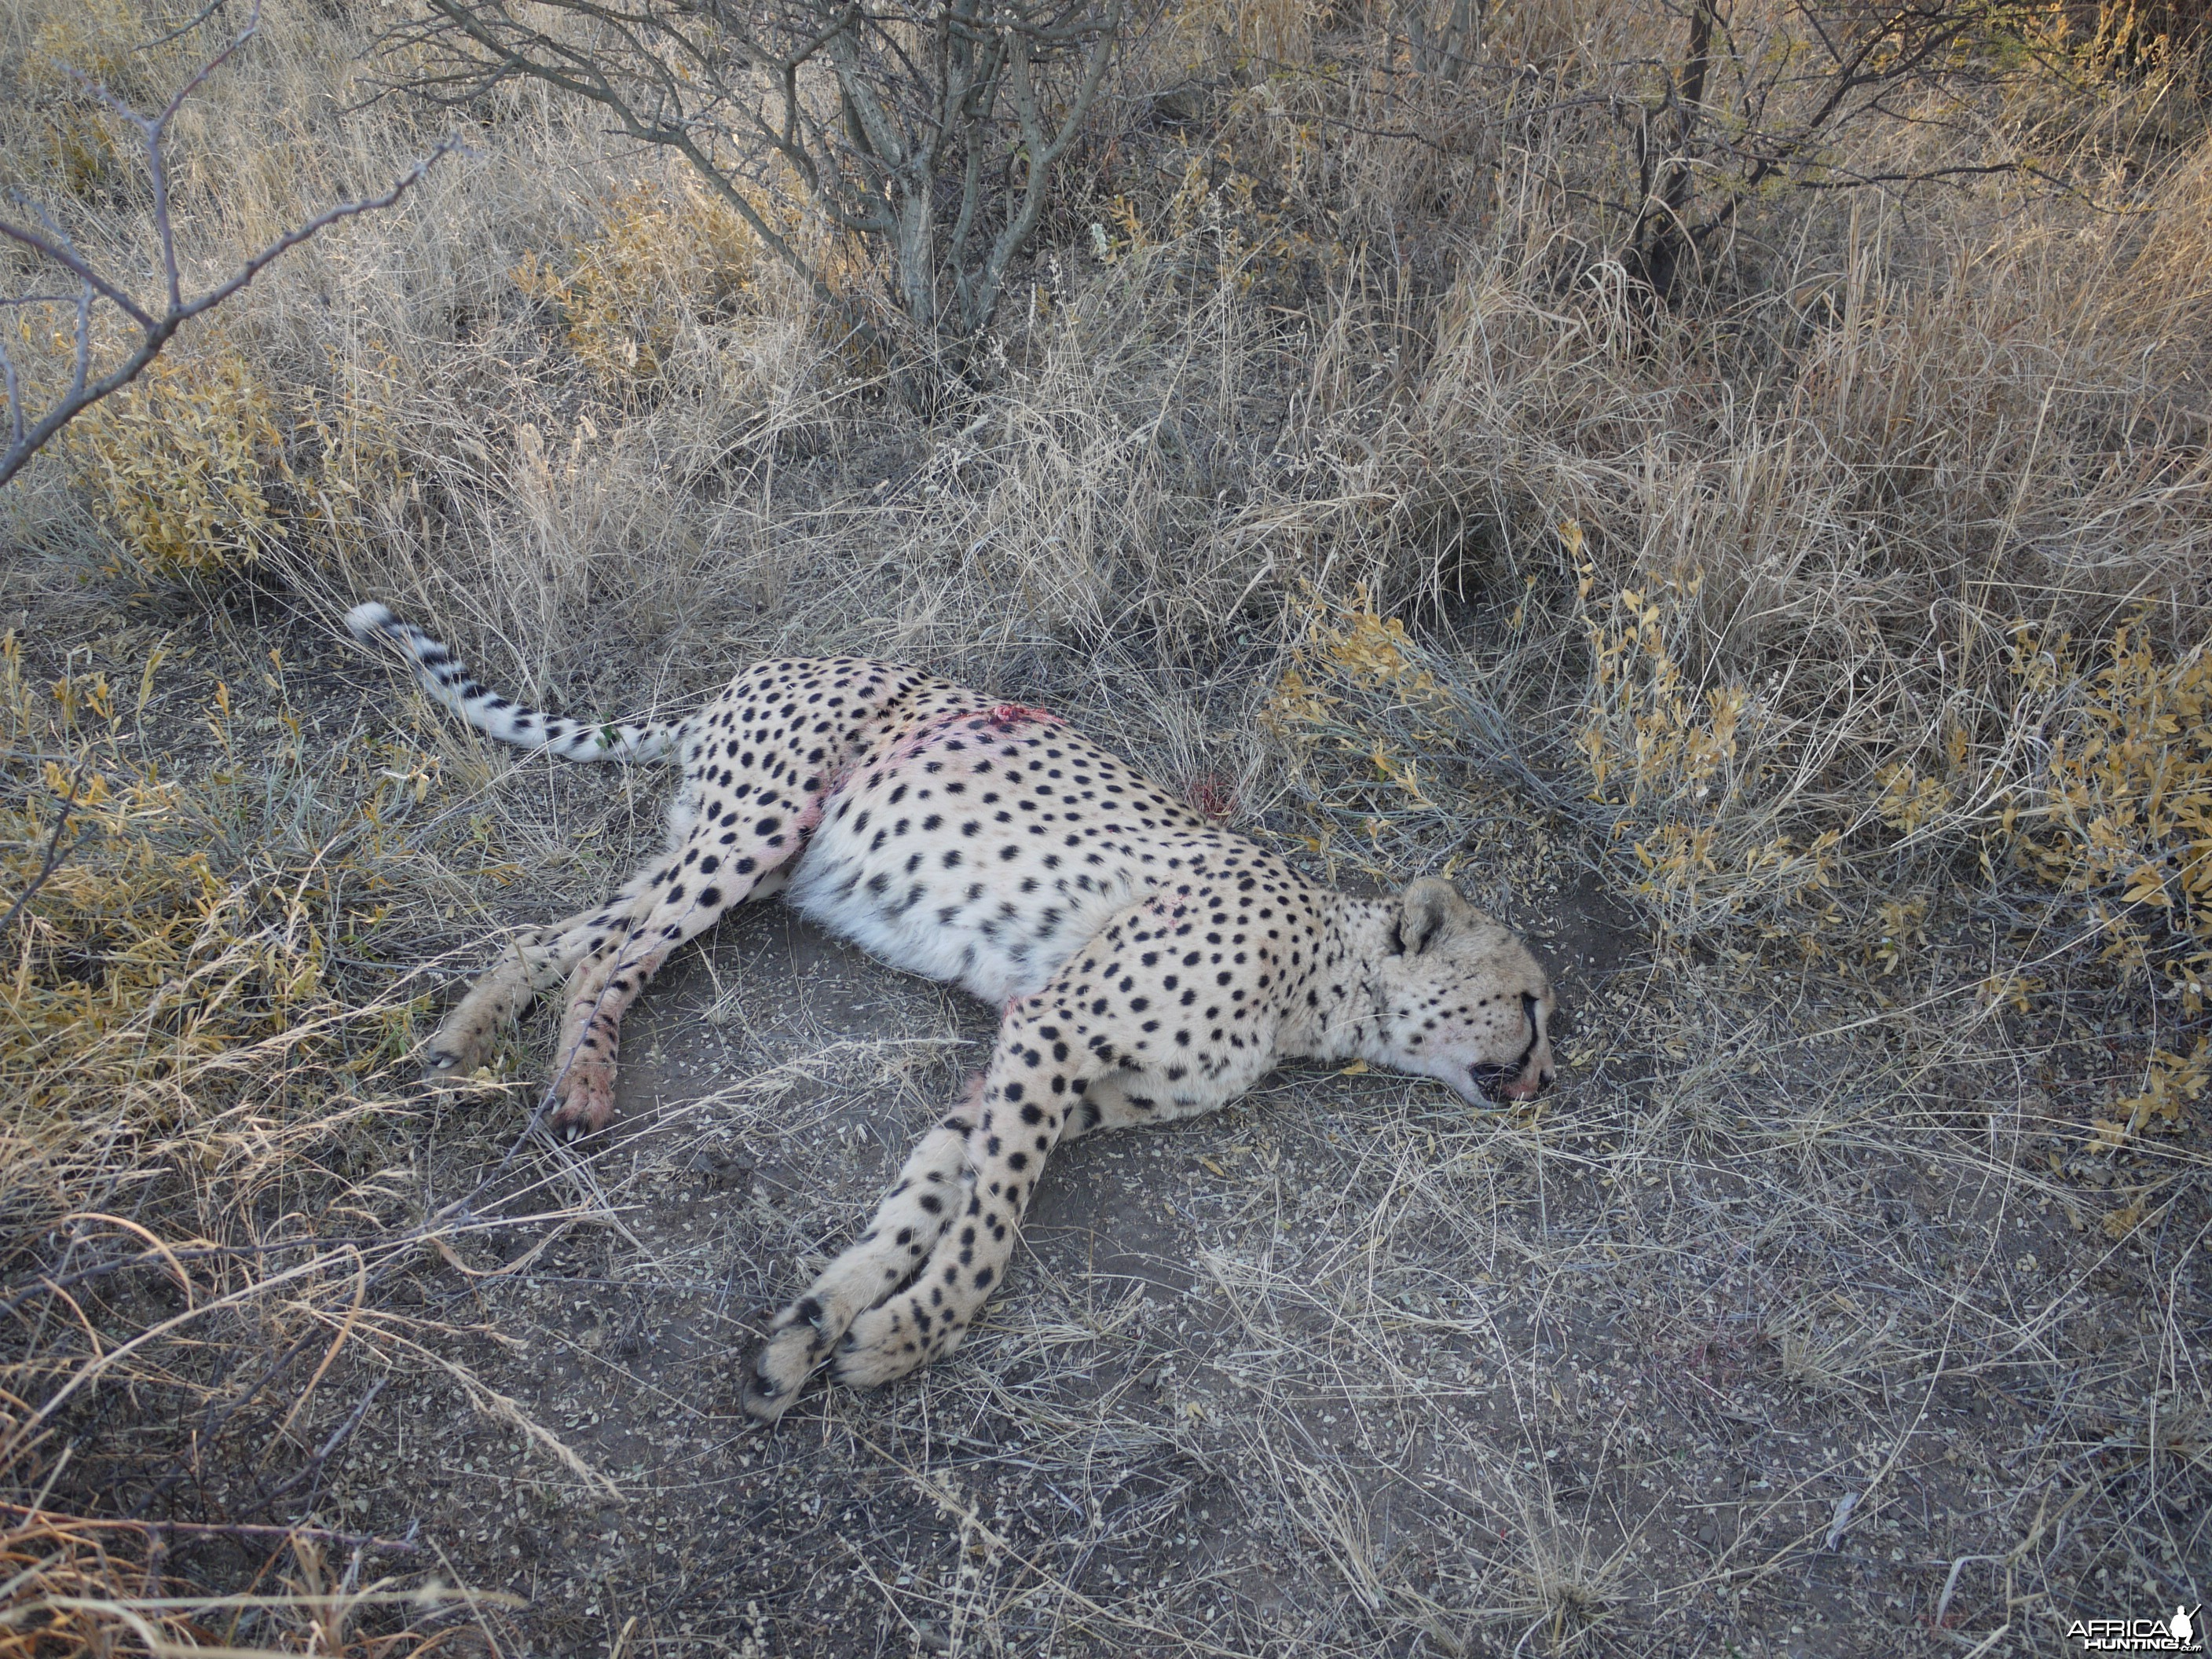 Cheetah hunted with Ozondjahe Hunting Safaris Namibia